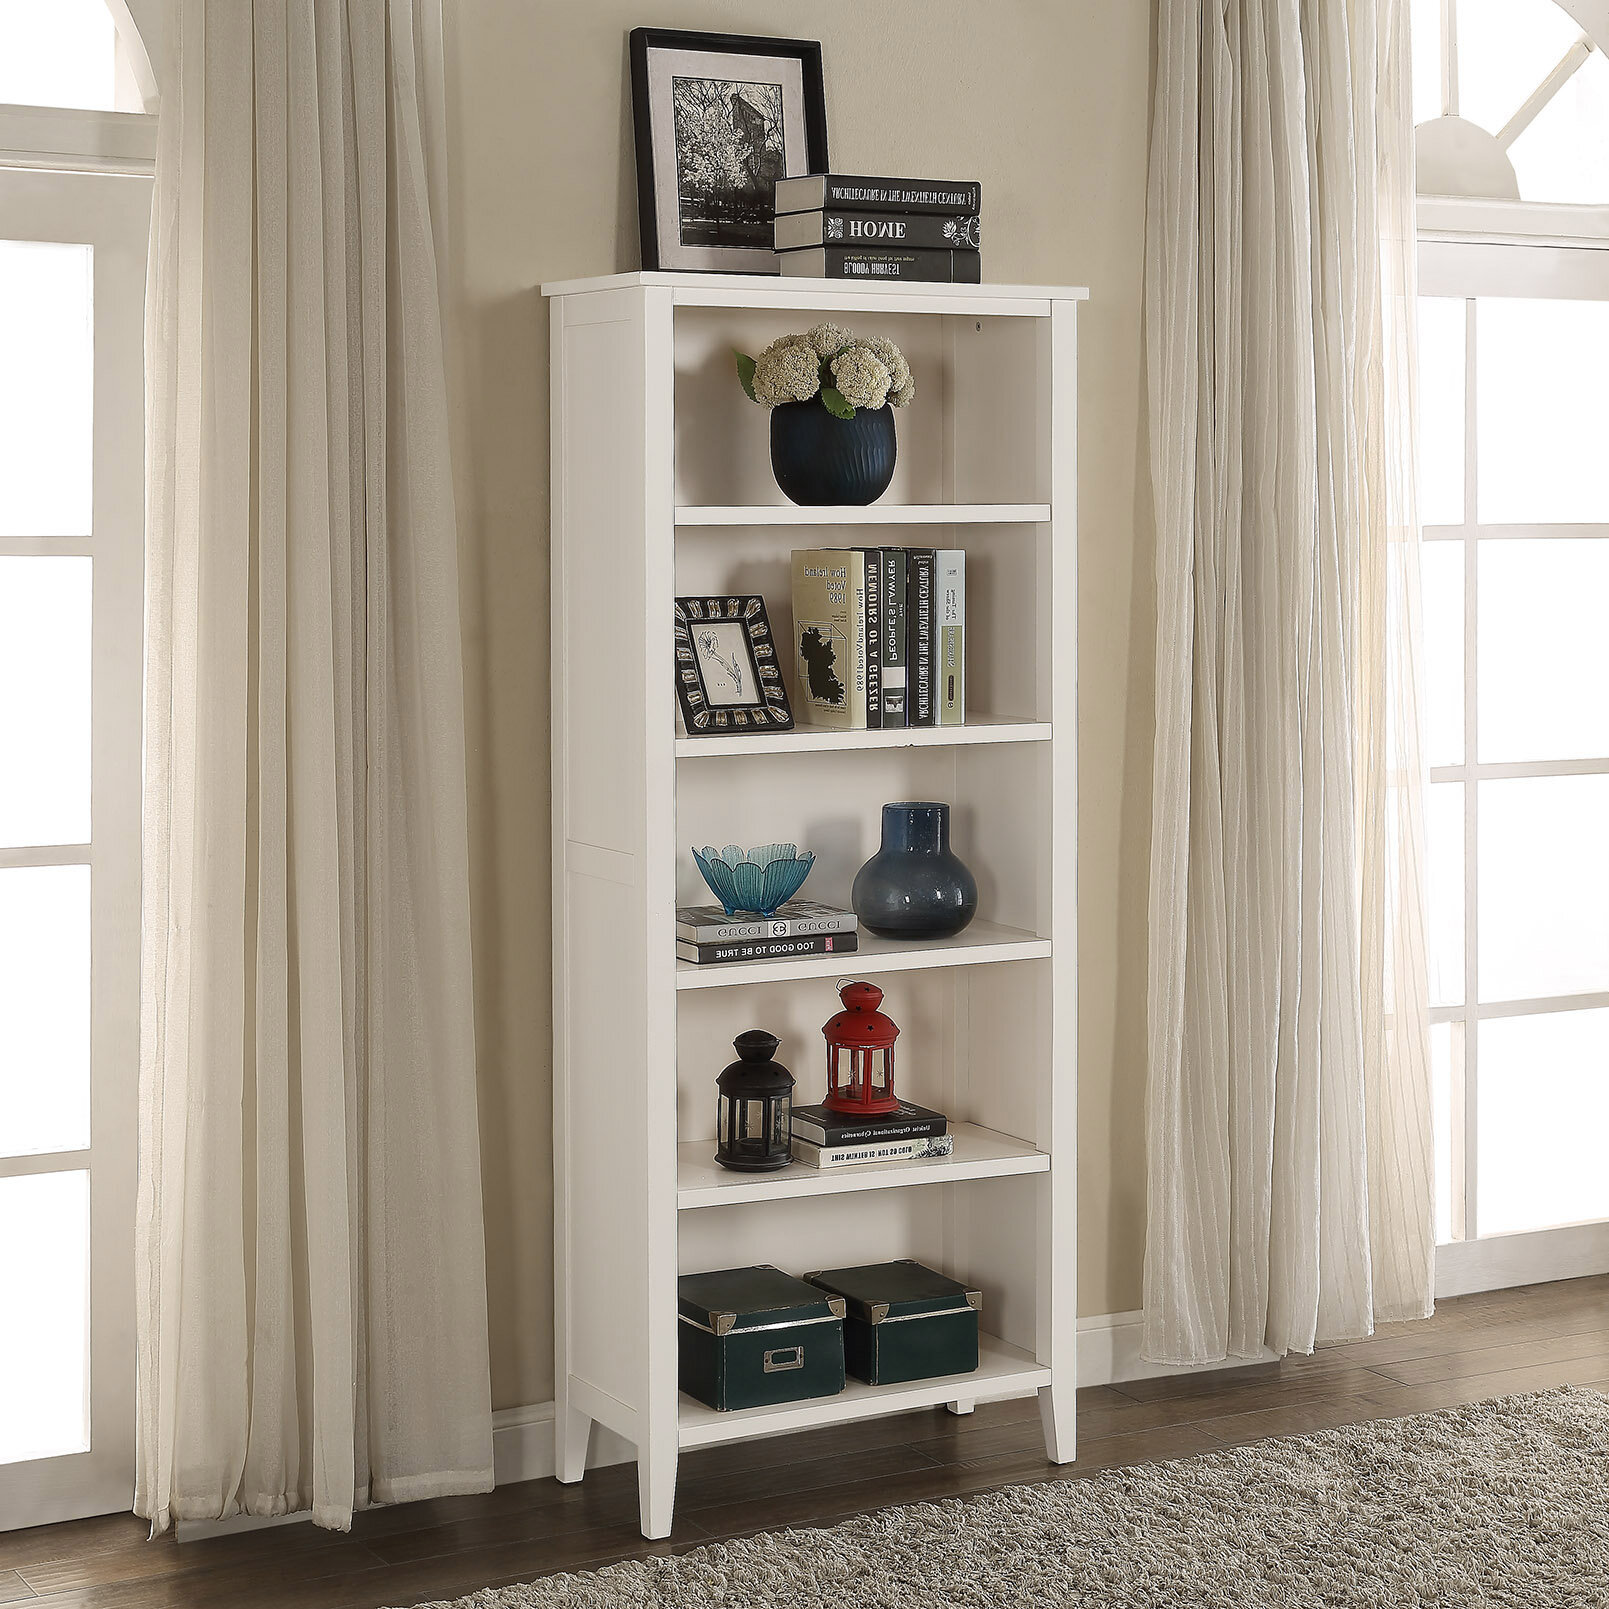 Homestyle collection savannah standard bookcase reviews wayfair malvernweather Image collections